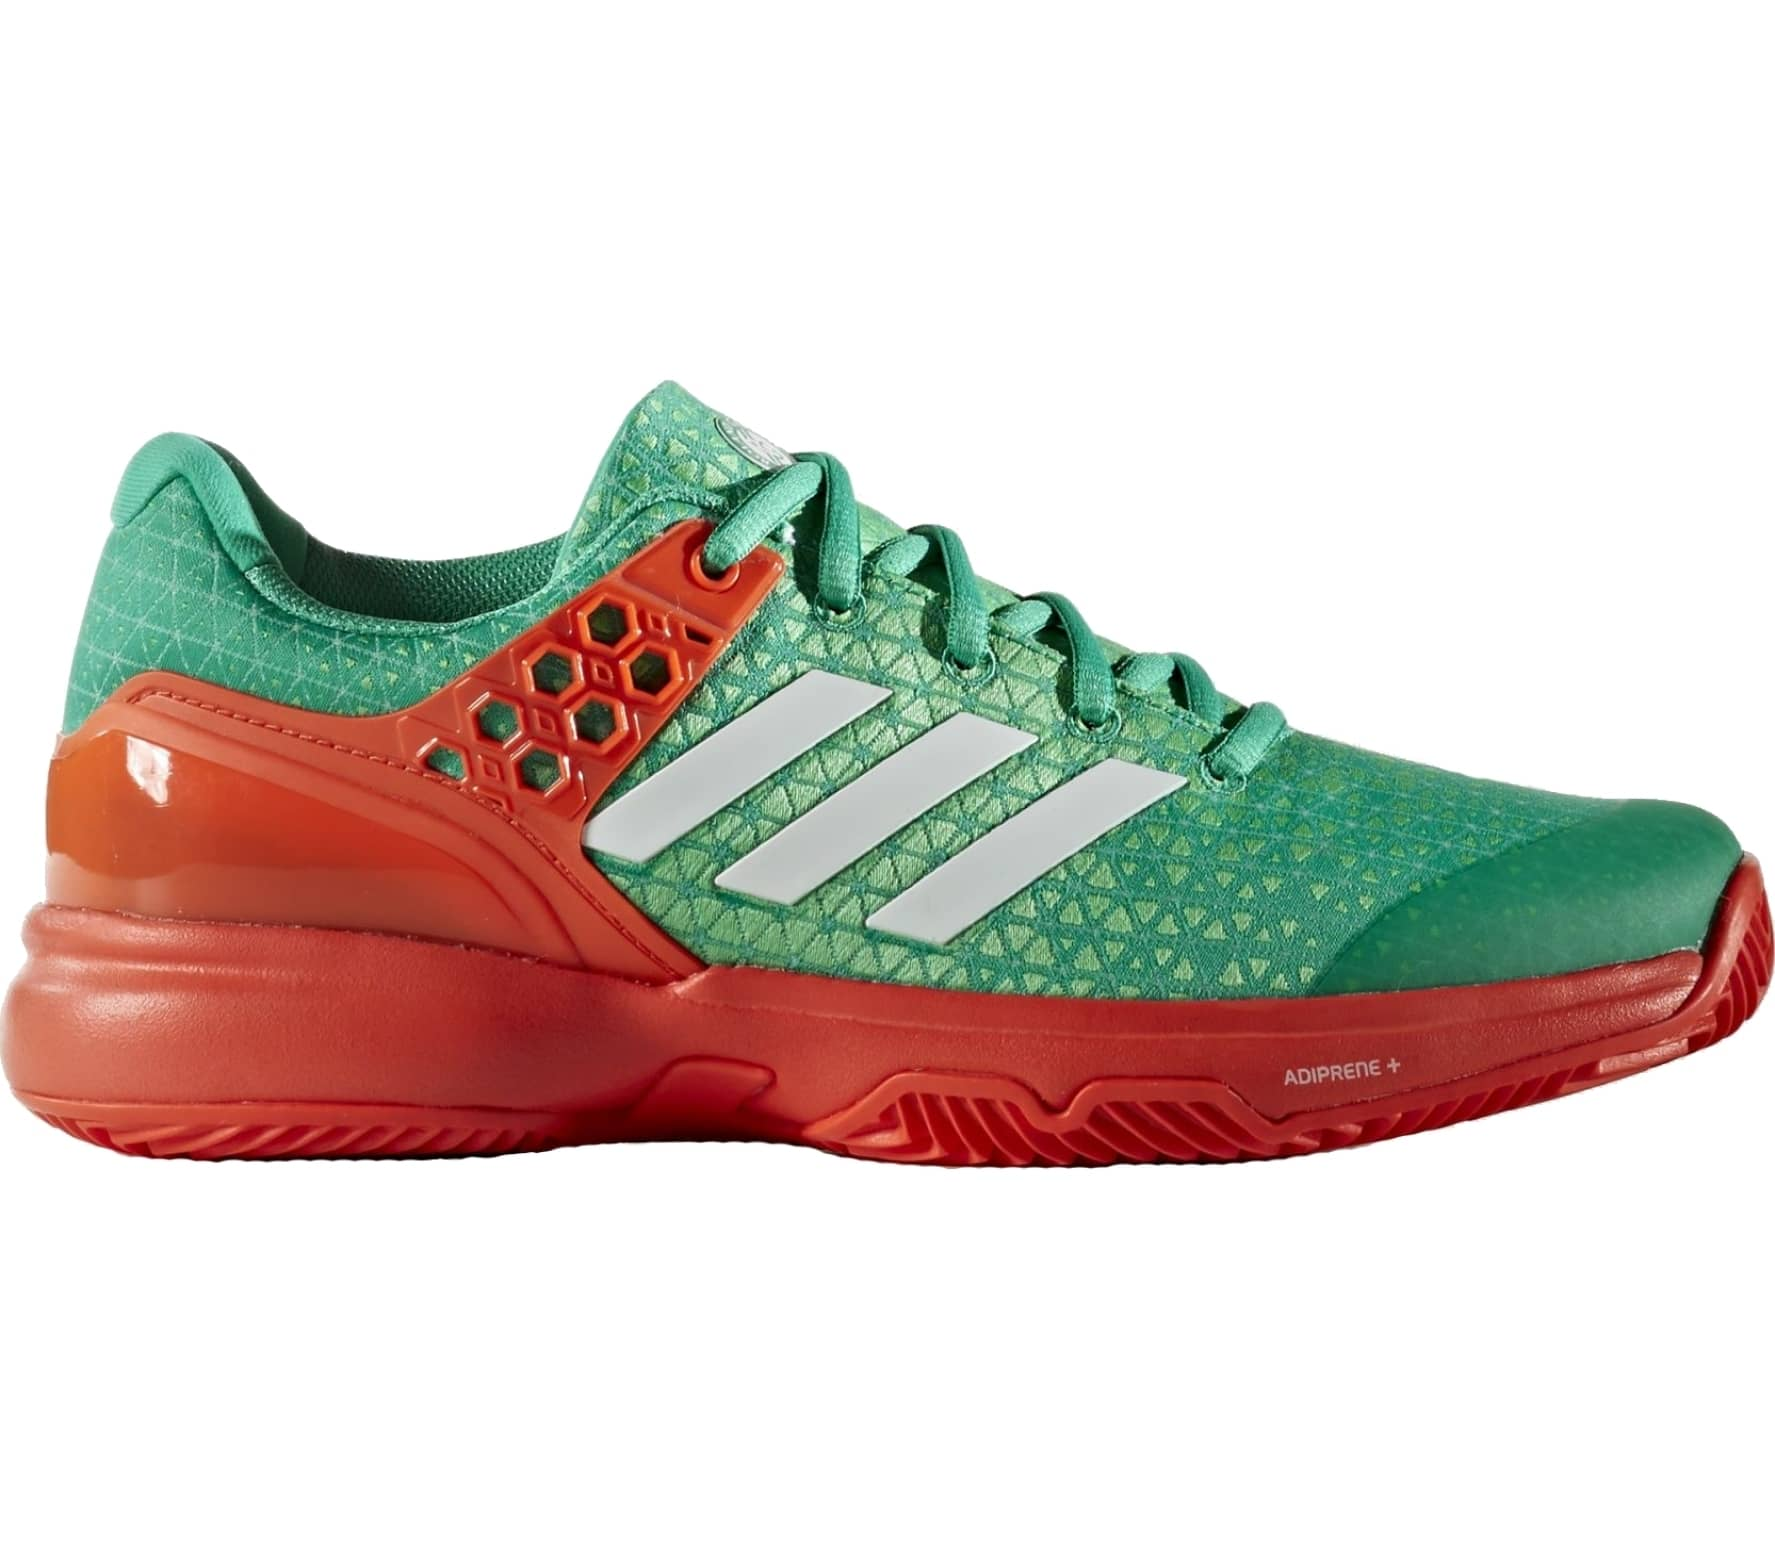 the latest 68614 5d22c Adidas - Adizero Ubersonic 2 Clay Textile womens tennis shoes (greenred)